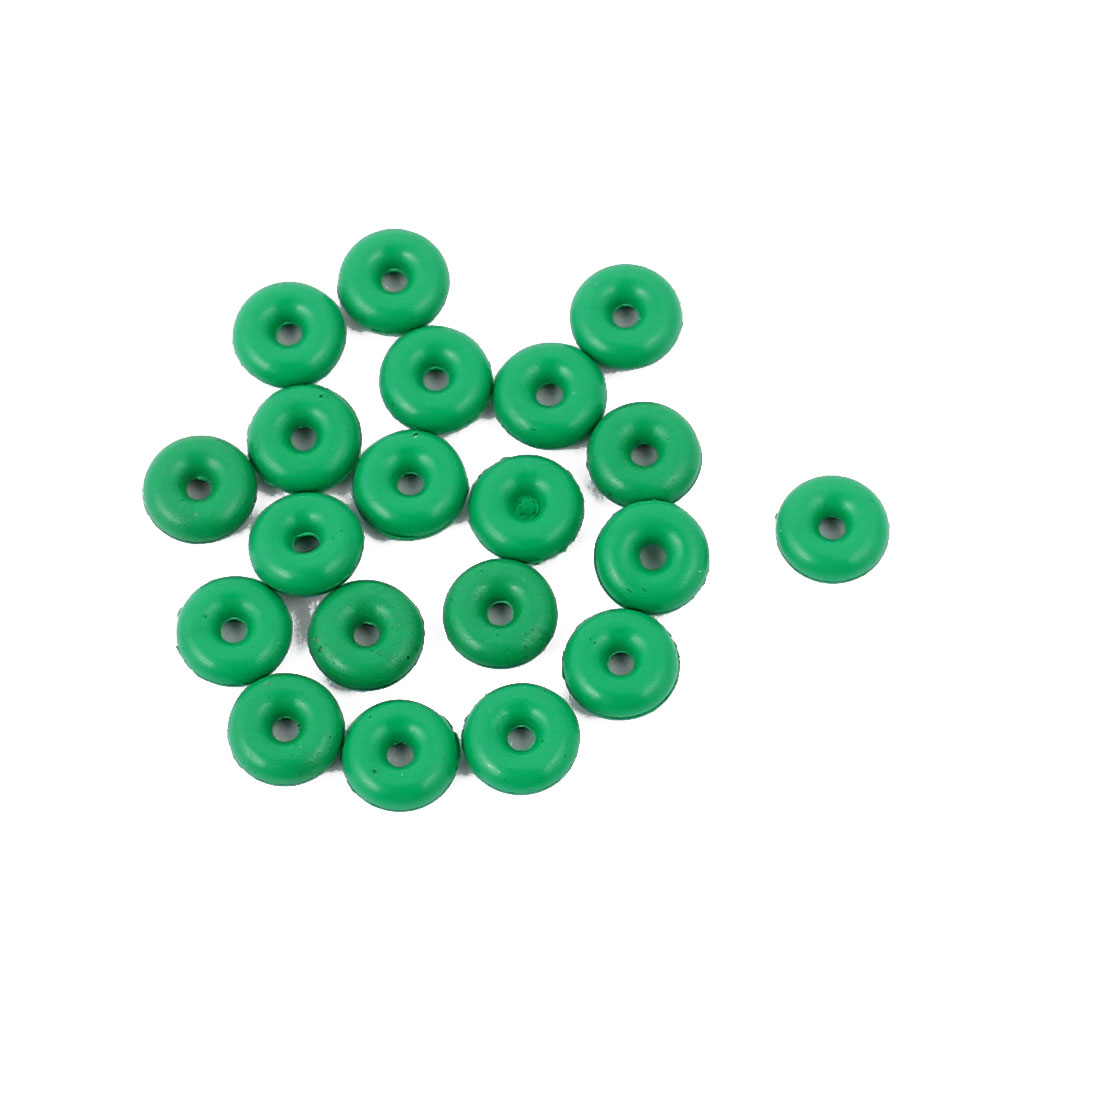 20pcs 1.9mm Thick Heat Resistant  Green O-Ring Rubber Sealing Ring 5mm OD